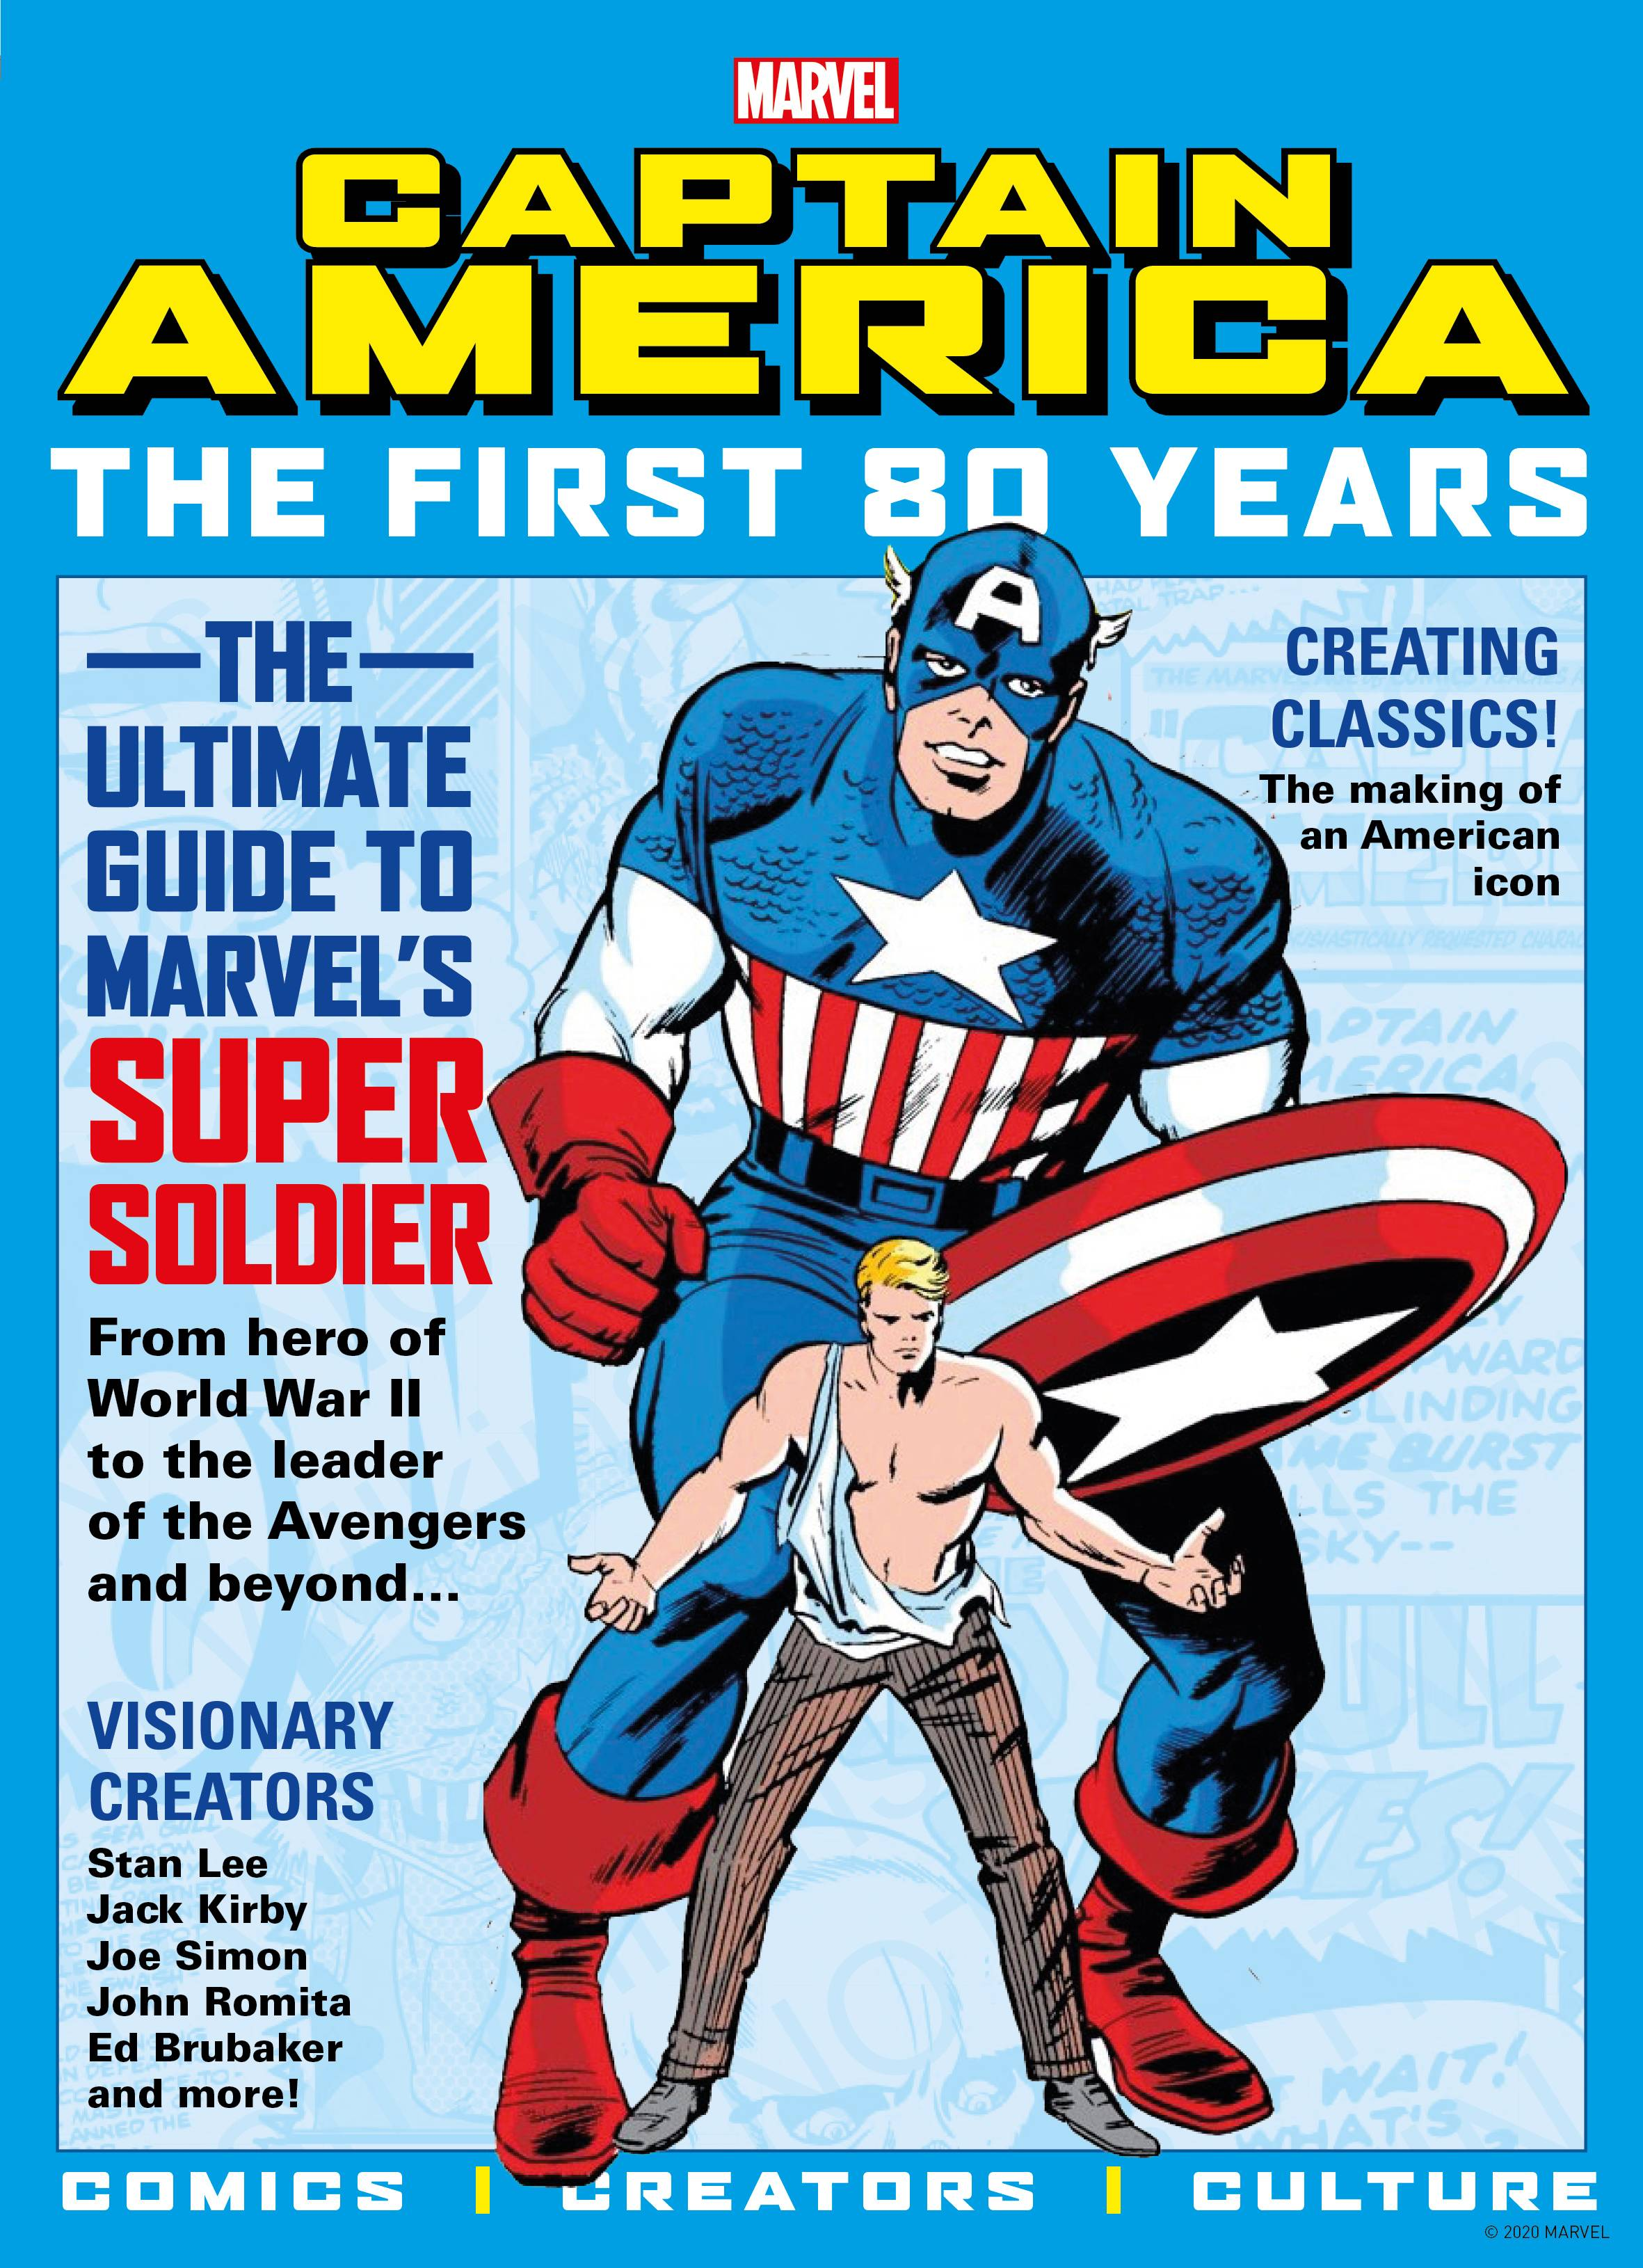 CAPTAIN AMERICA FIRST 80 YEARS SC NEWSSTAND